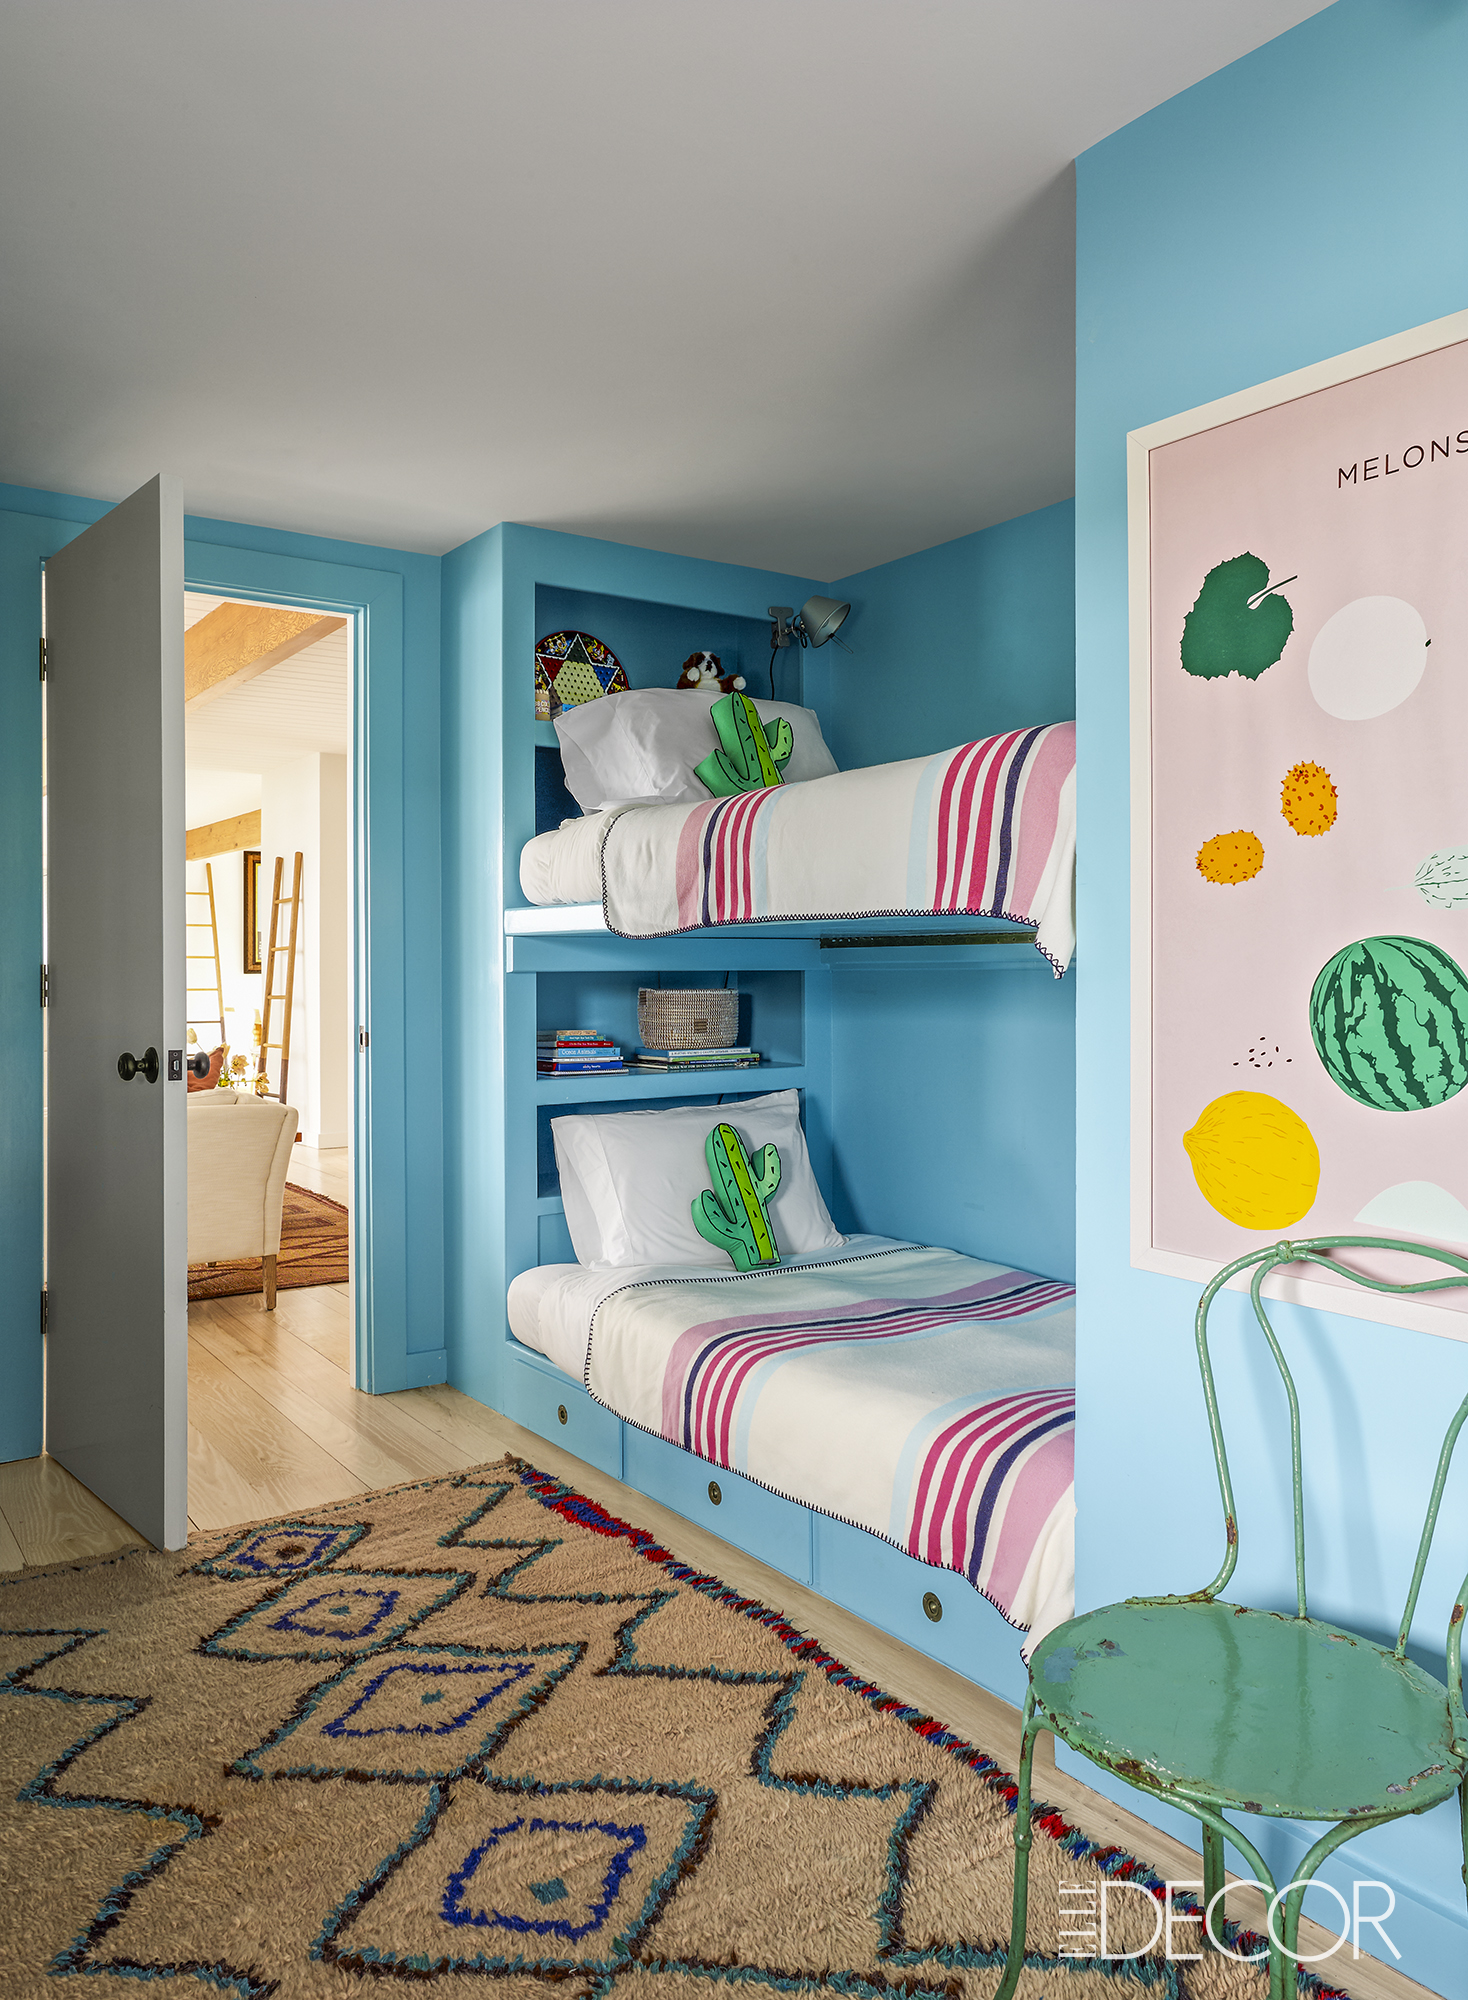 Decorate Your Kids Room Beautifully Goodworksfurniture: ideas to decorate your room